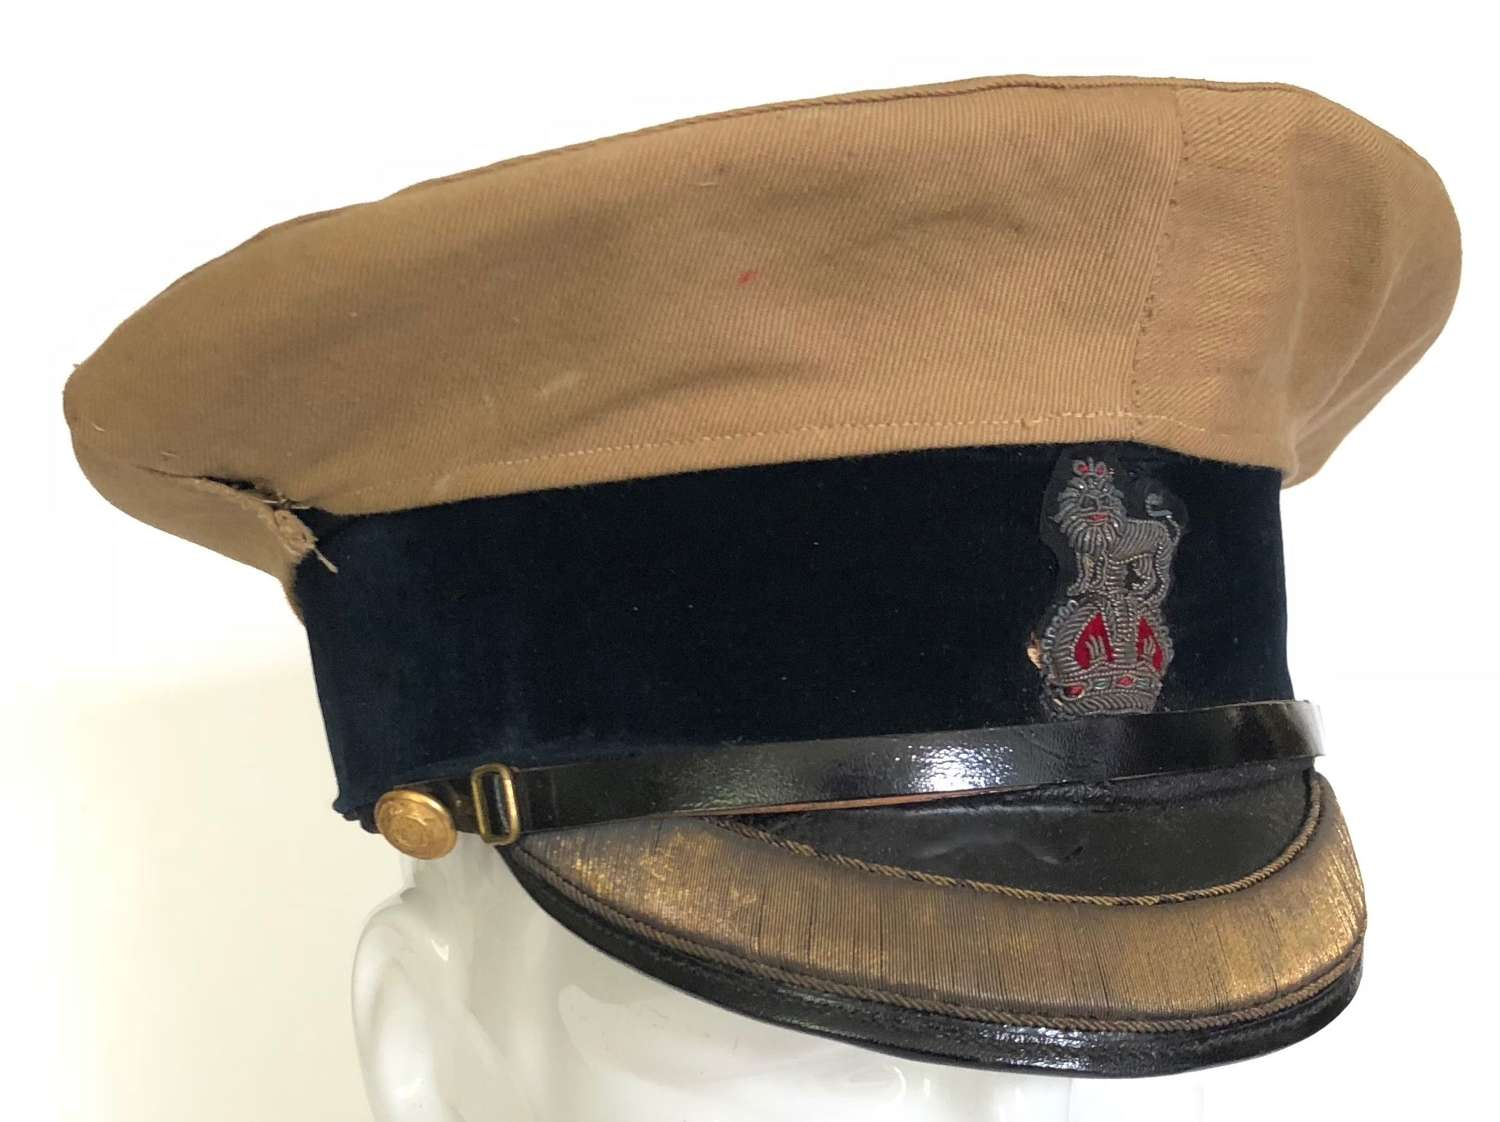 Edwardian Indian Medical Service Officer's Peaked Forage Cap.